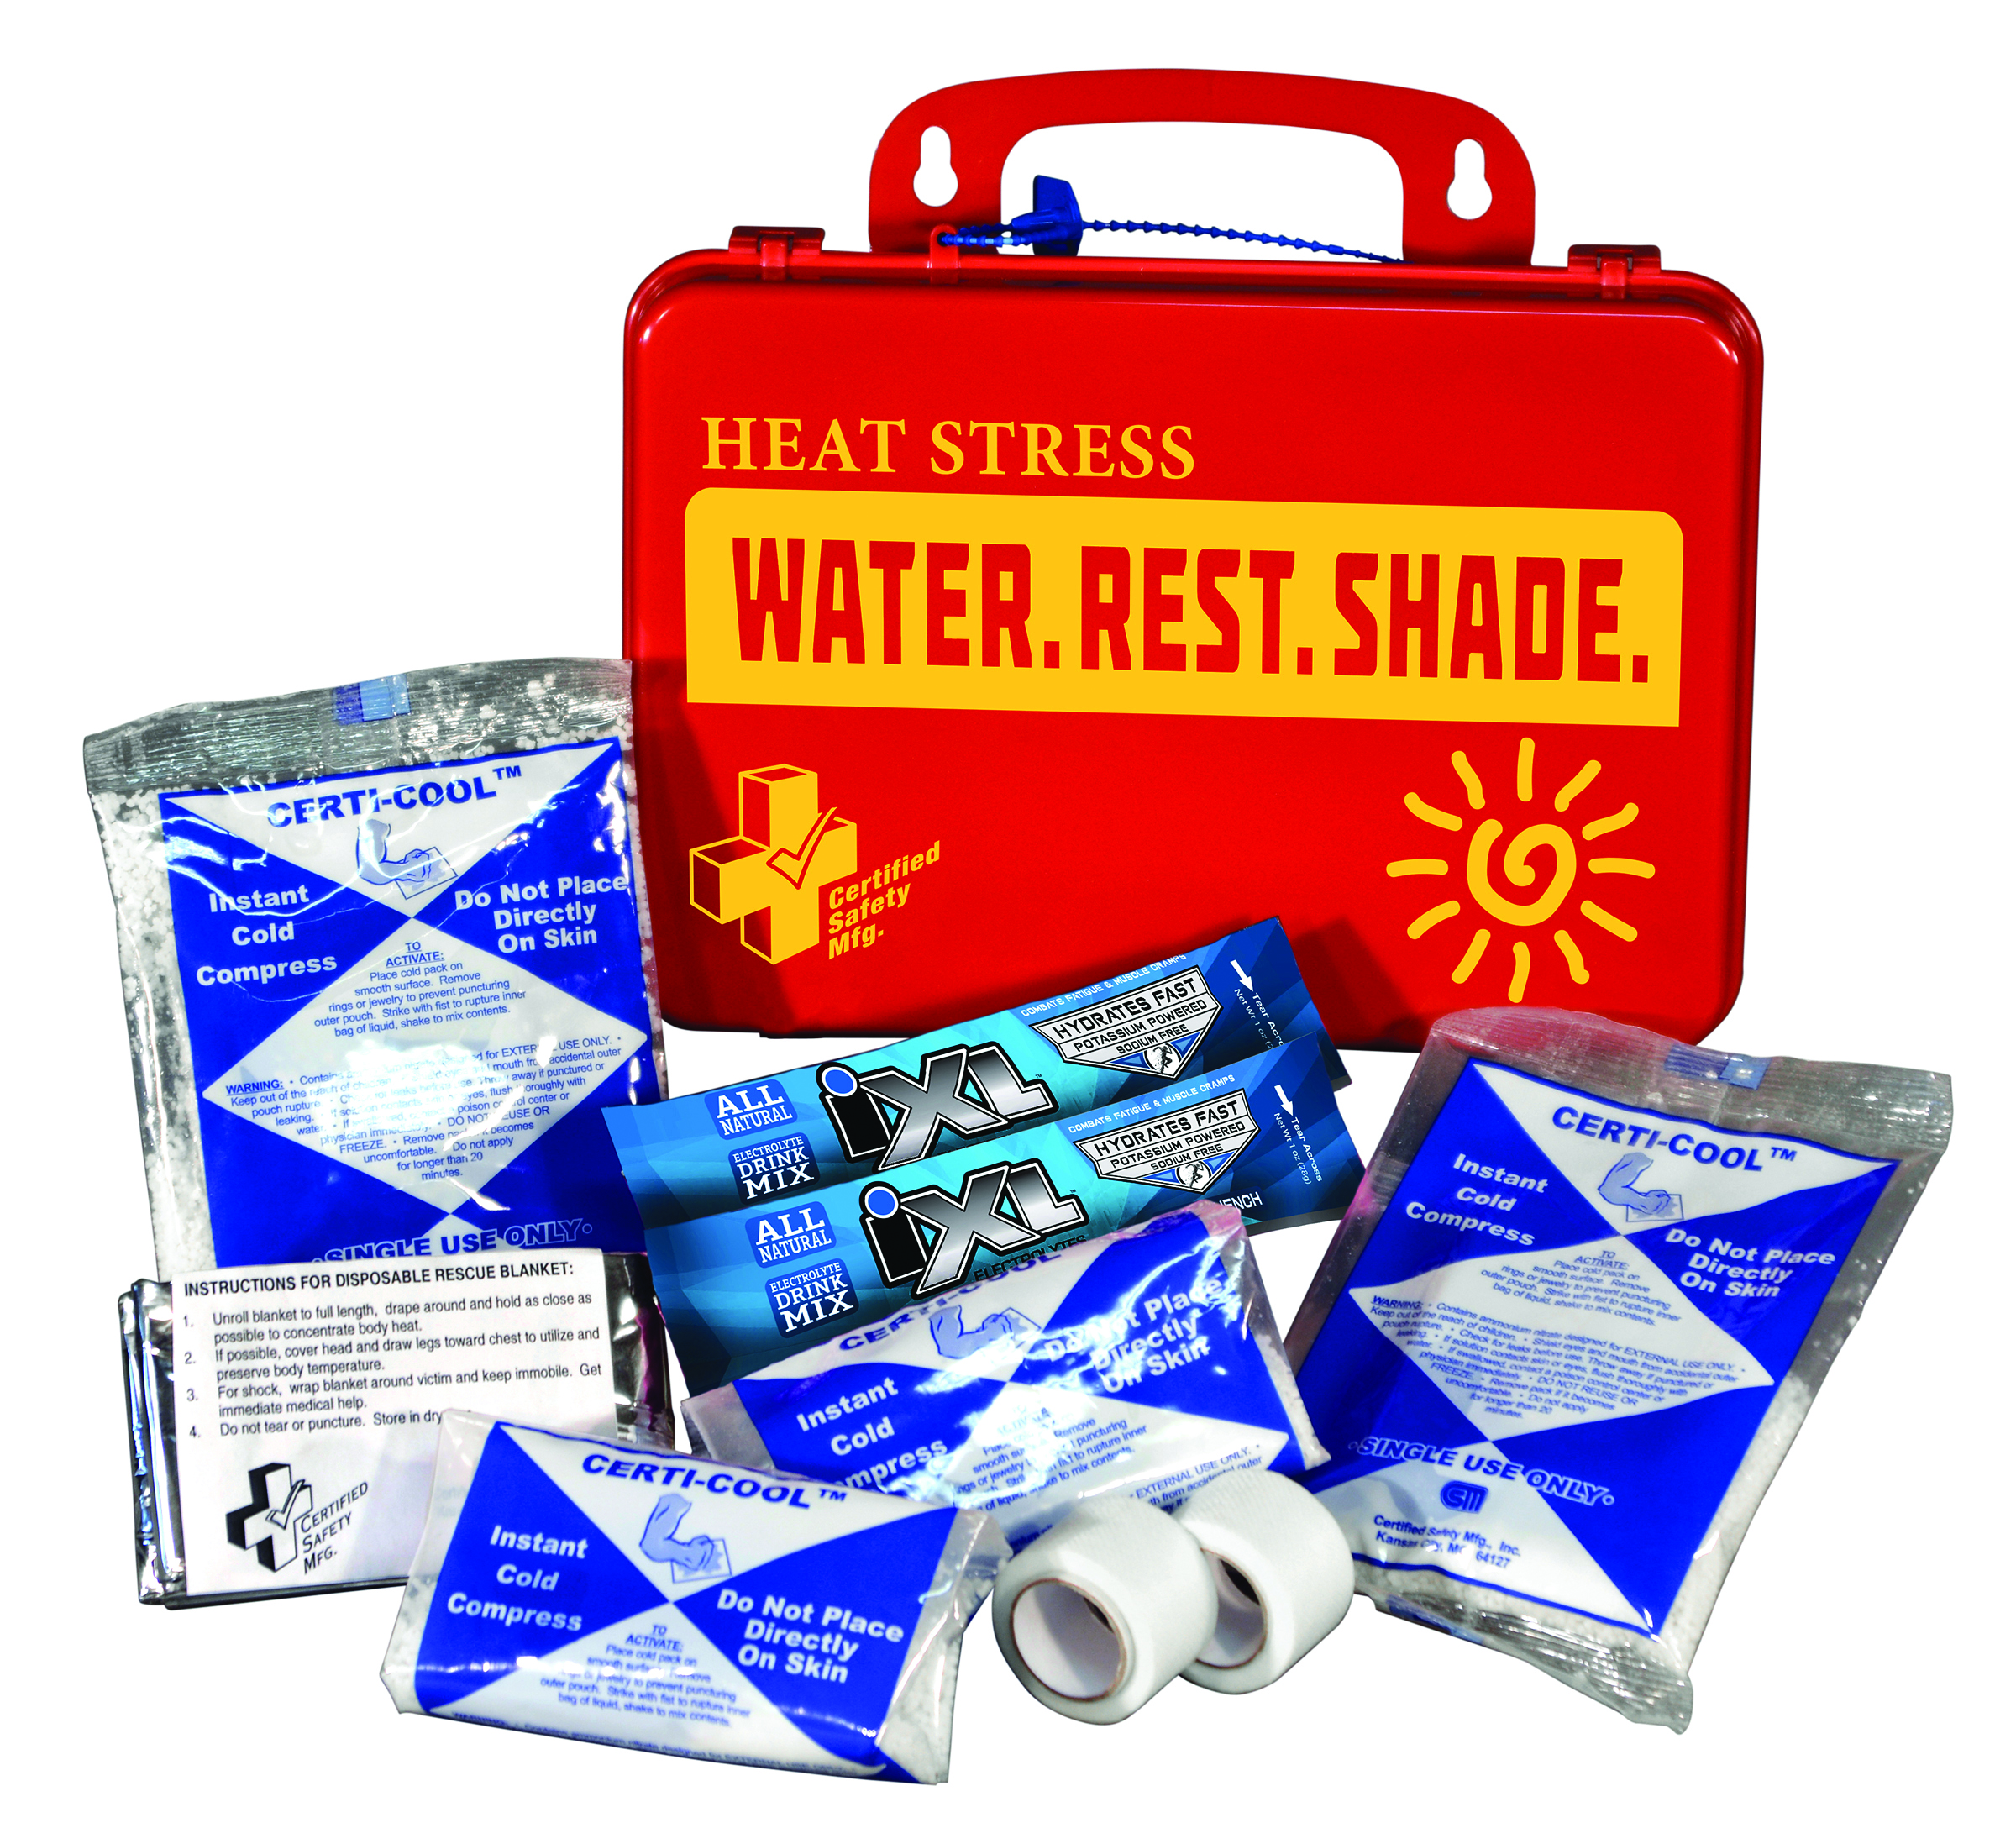 K613-040                       - Heat Stress Relief-Heat Stress Relief Kit-----UOM: 1/EA